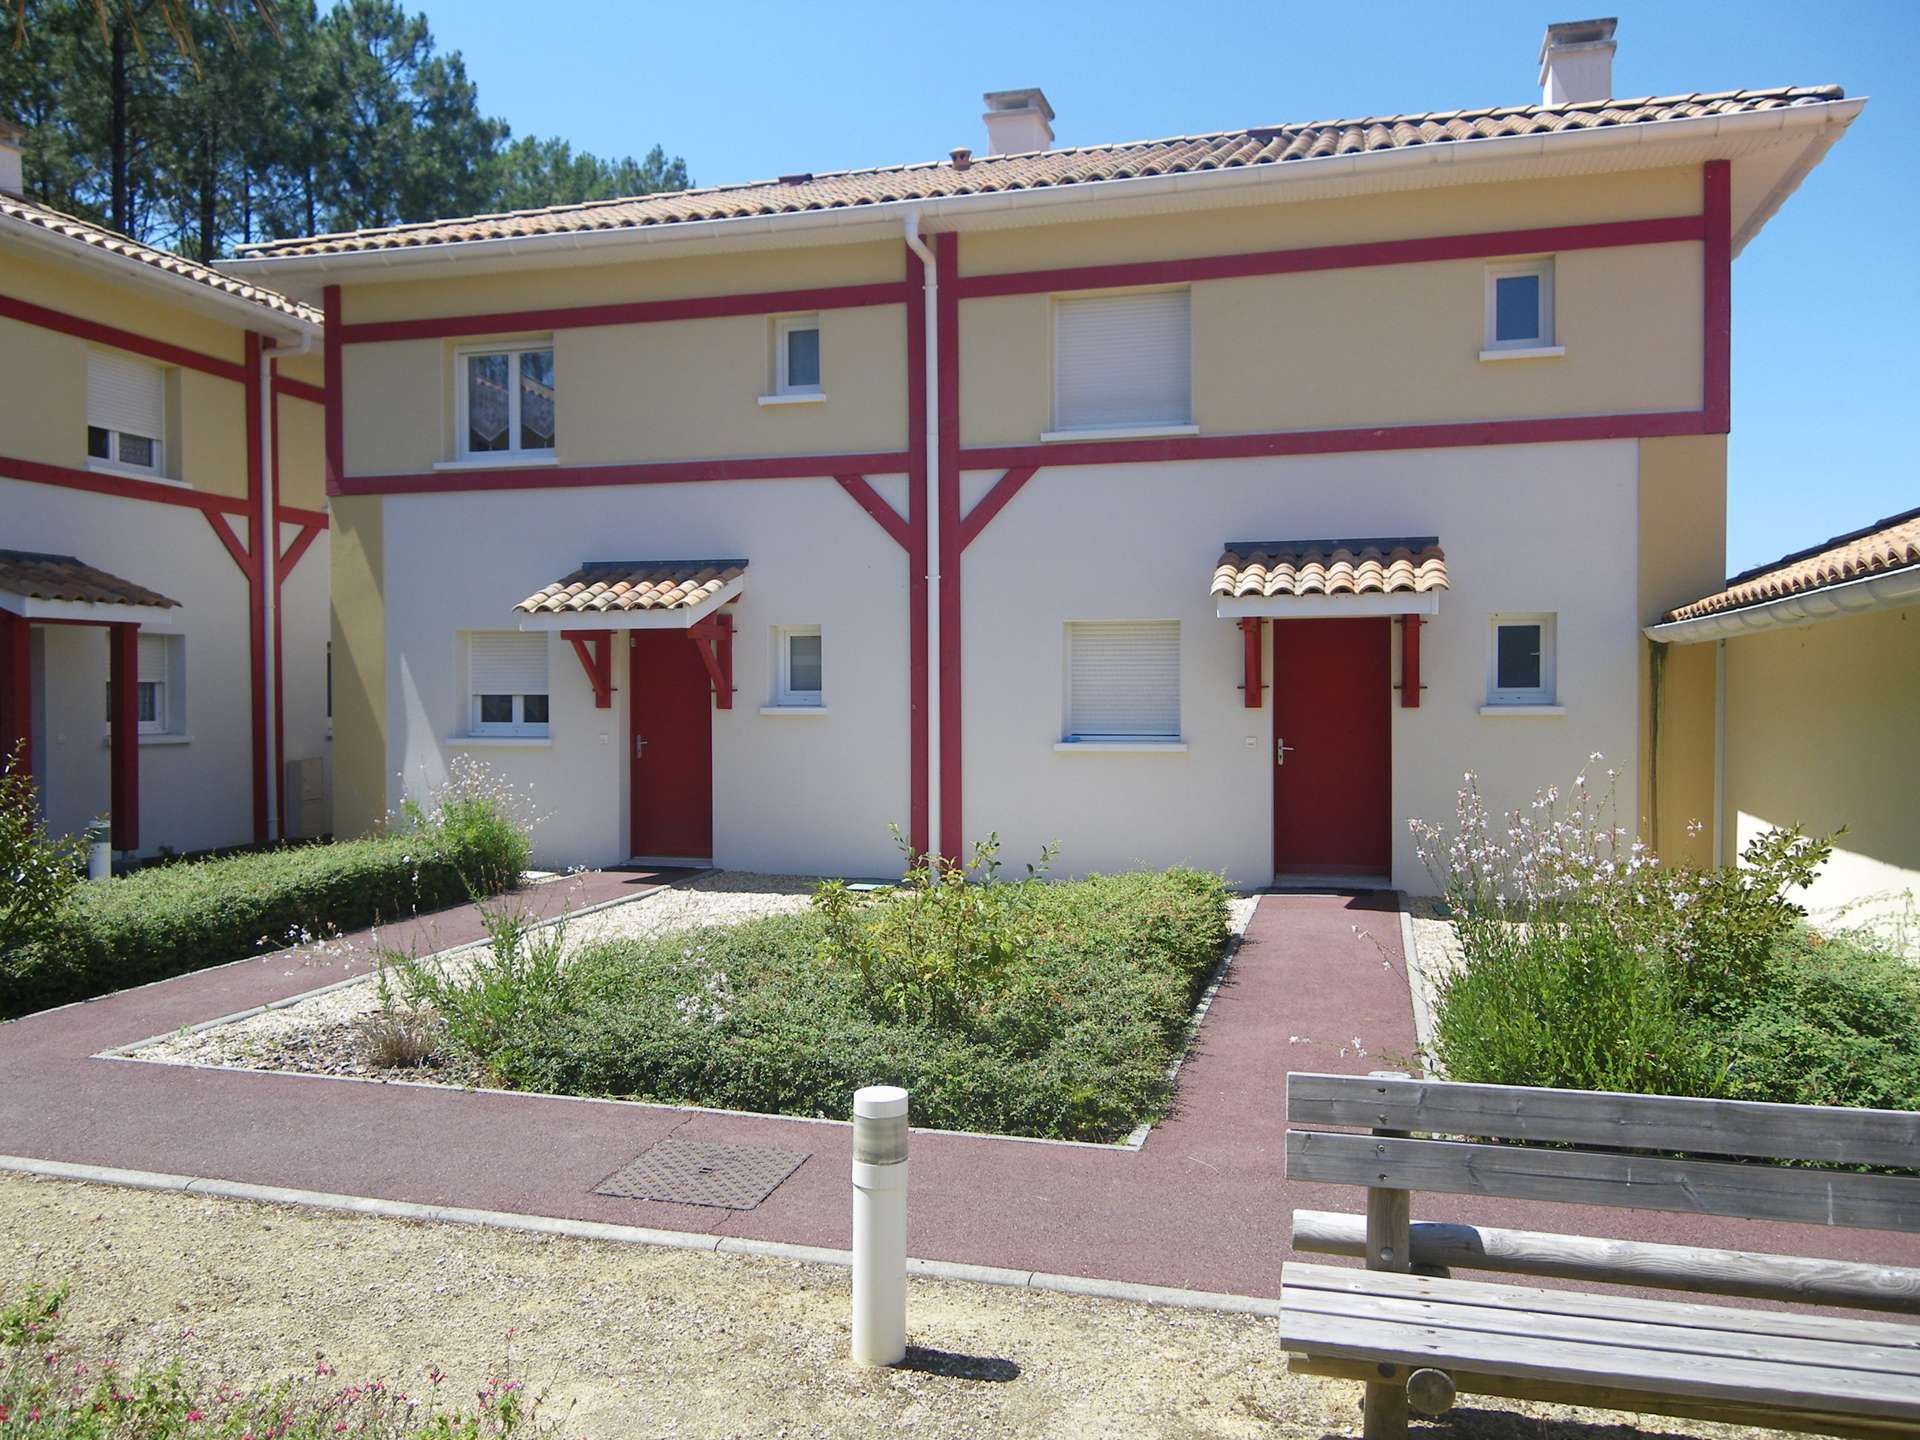 Holiday rental villa for 6 in Messanges